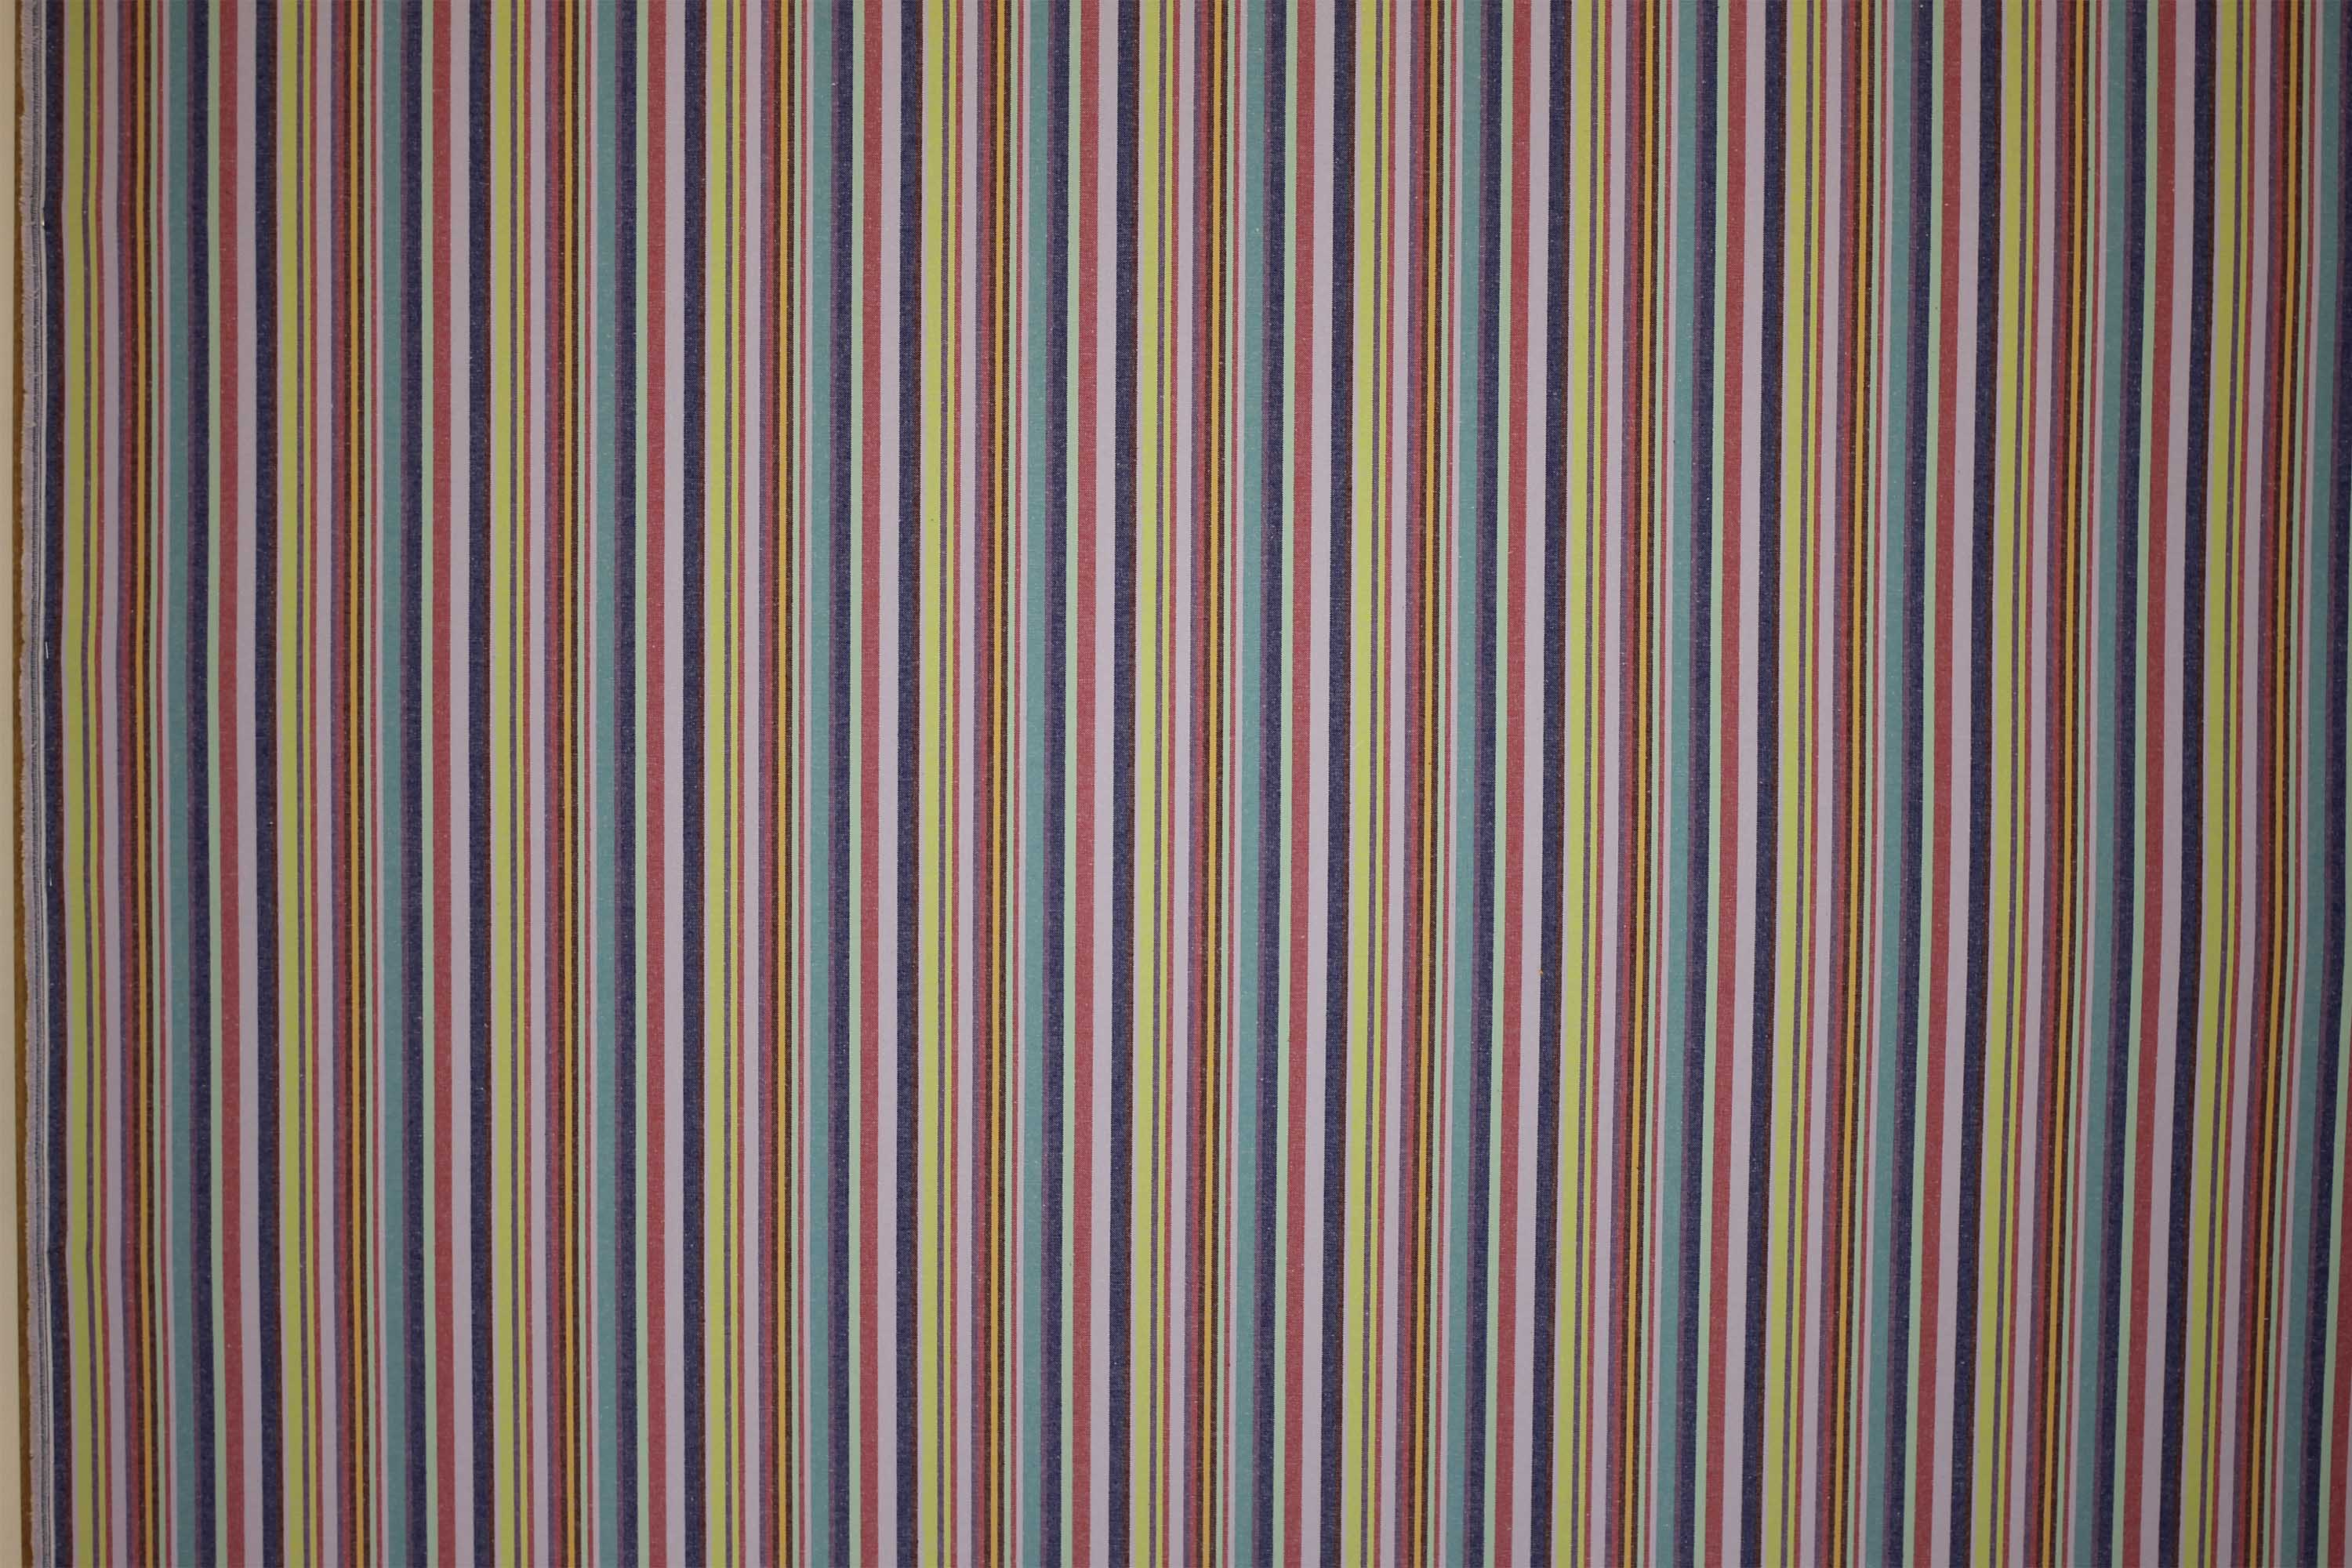 Lavender Striped Fabrics | Stripe Cotton Fabrics | Striped Curtain Fabrics | Upholstery Fabrics  Quickstep Stripes